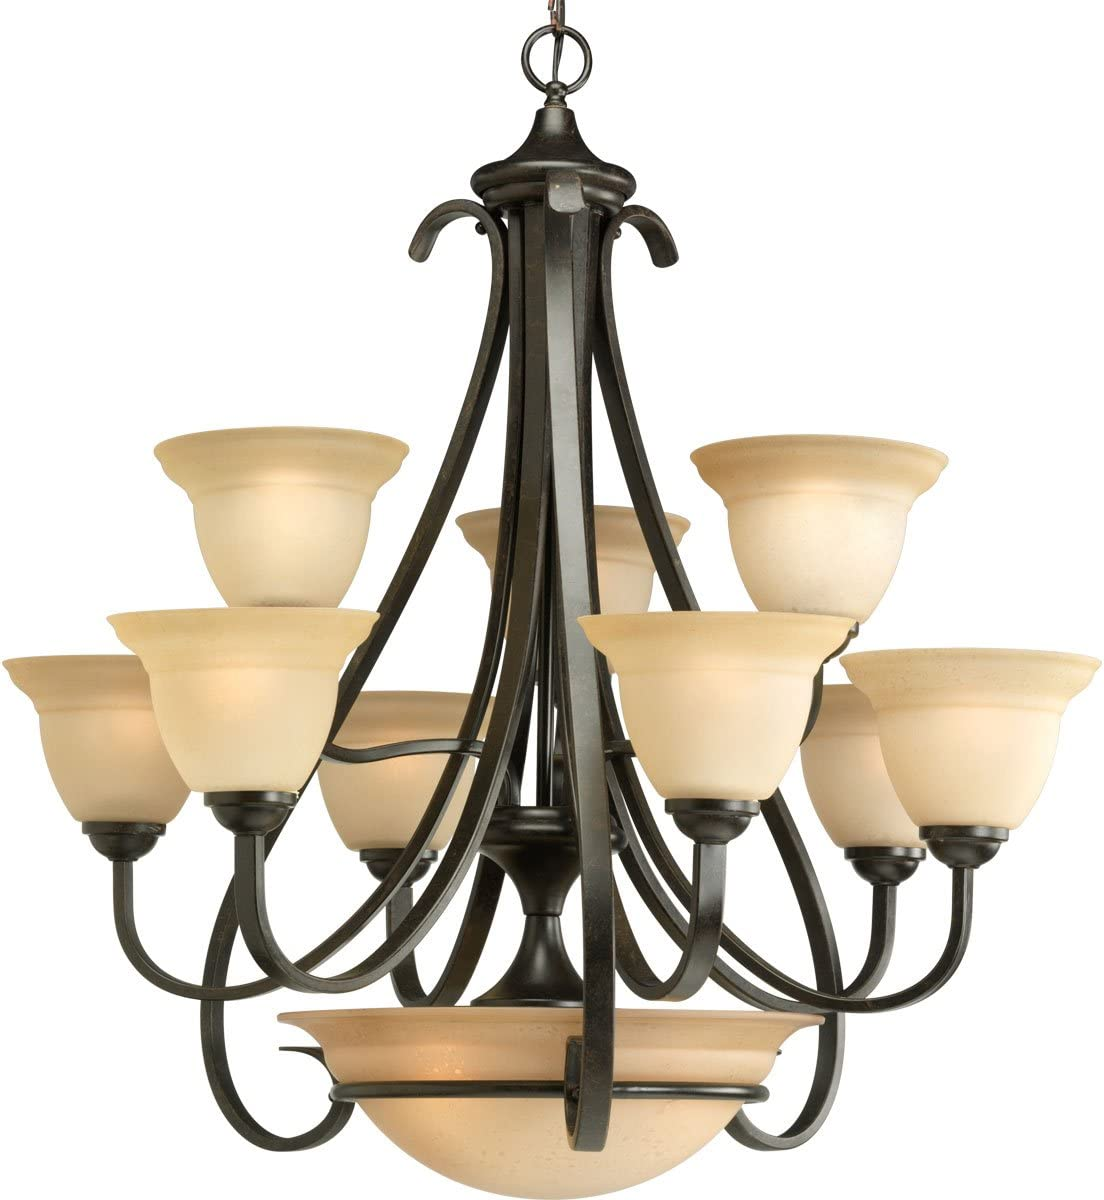 Progress Lighting P4418-77 9-Light Two-Tier Torino Chandelier, 32 x 32 x 33 , Forged Bronze